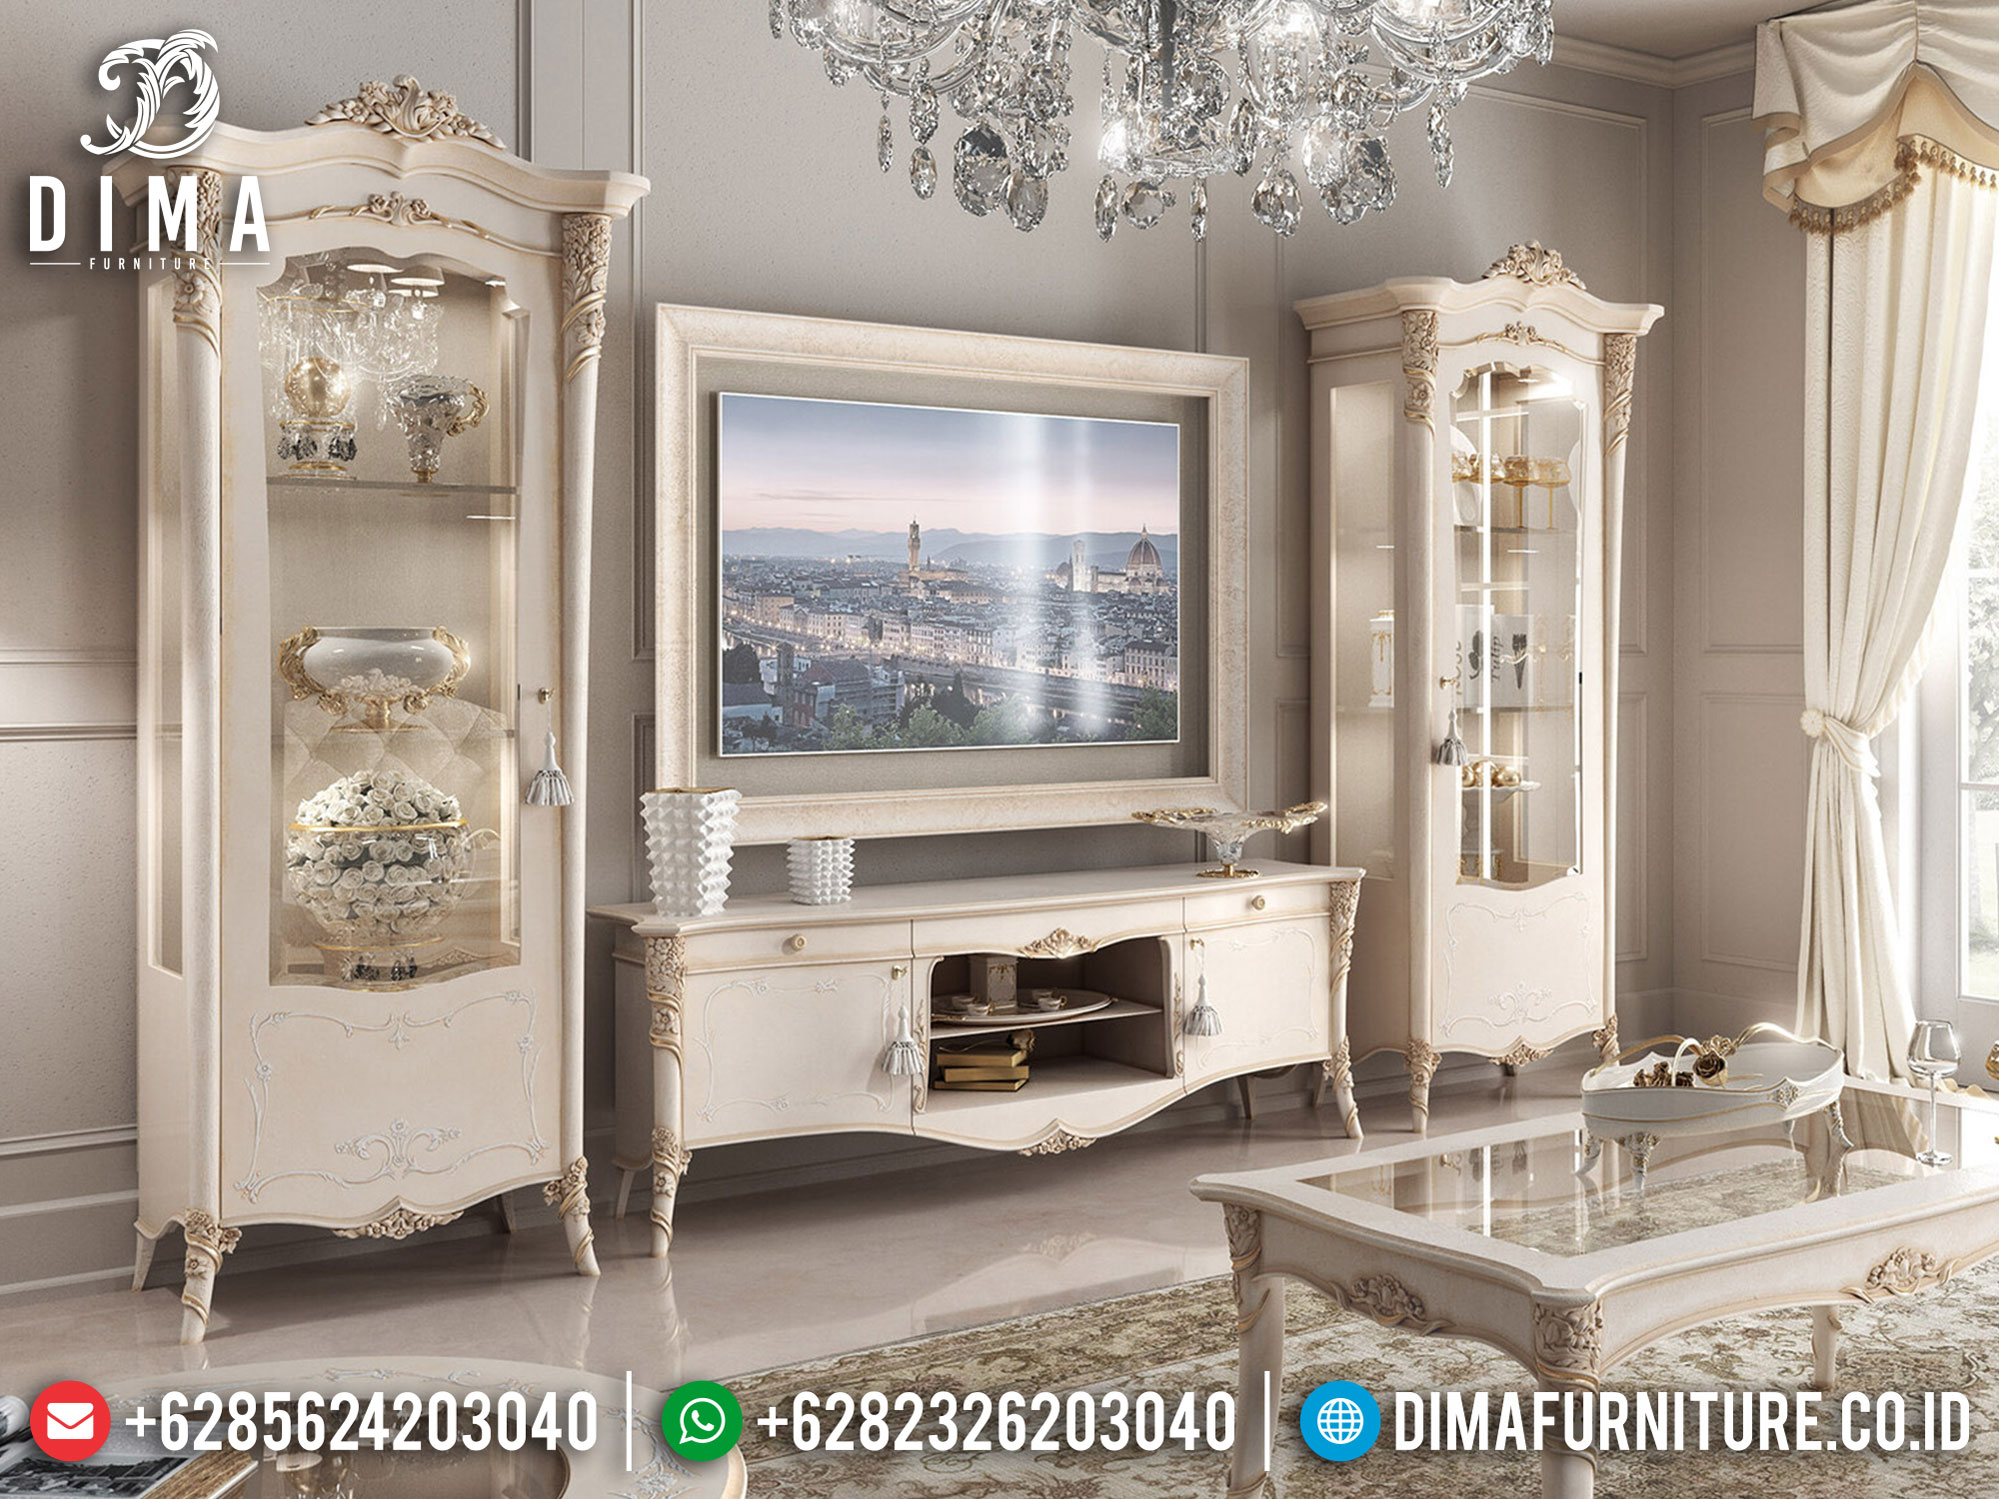 Model Bufet TV Mewah Elegant Konsep New Design Furniture Jepara Luxury BT-0880